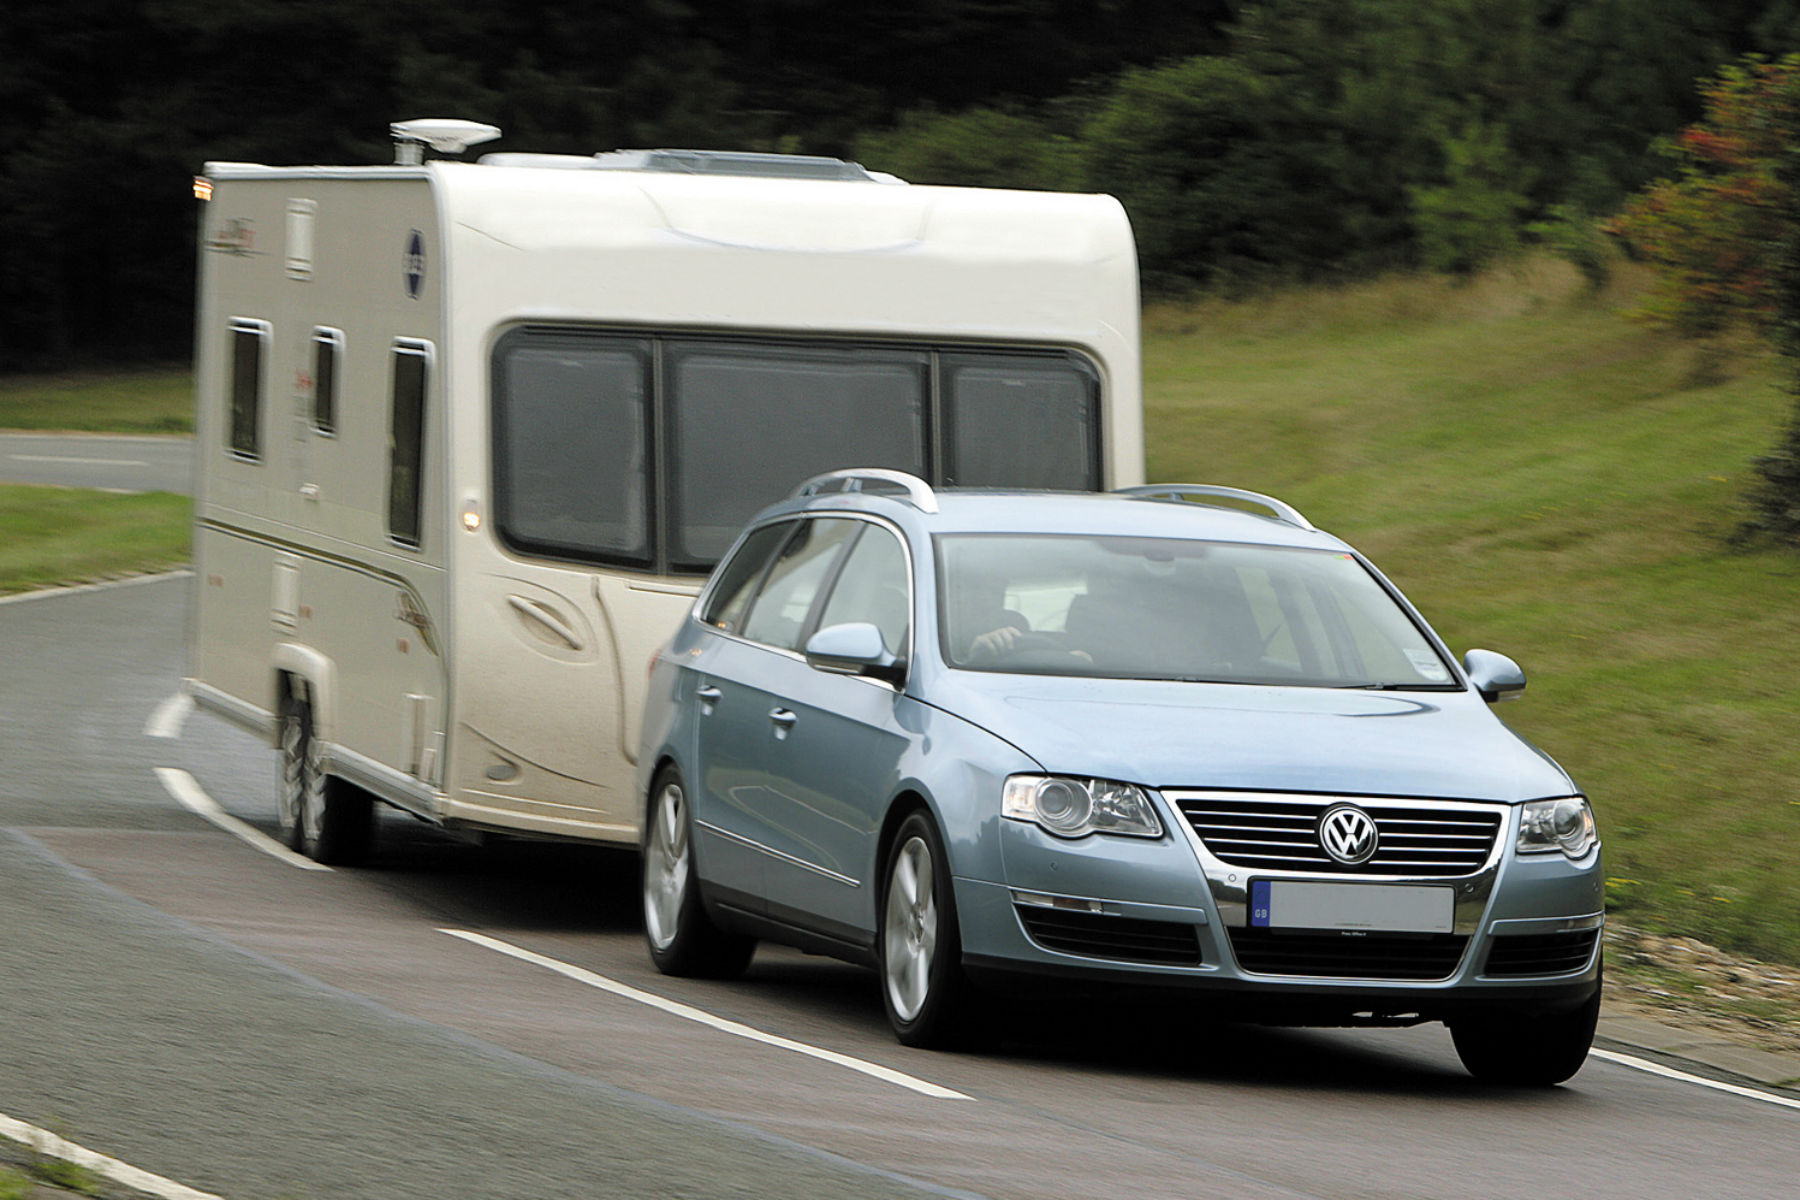 You can now get PCP deals on caravans and motorhomes